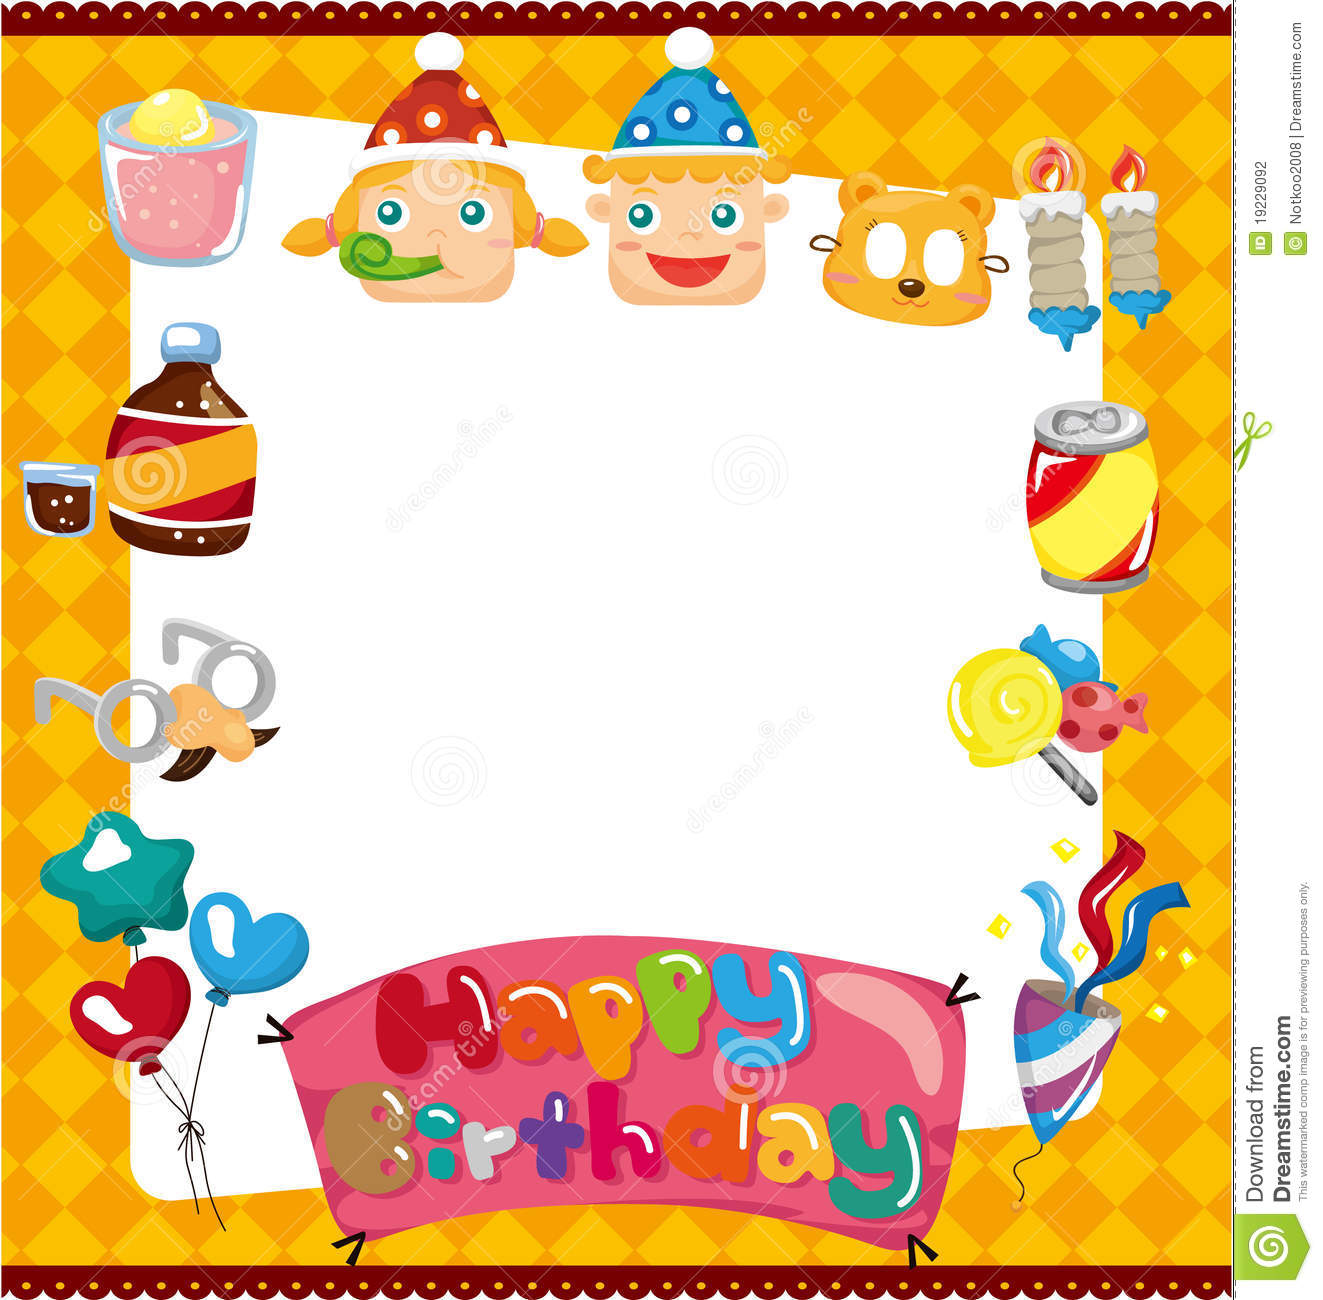 cartoon birthday wallpaper ; cartoon-birthday-card-19229092